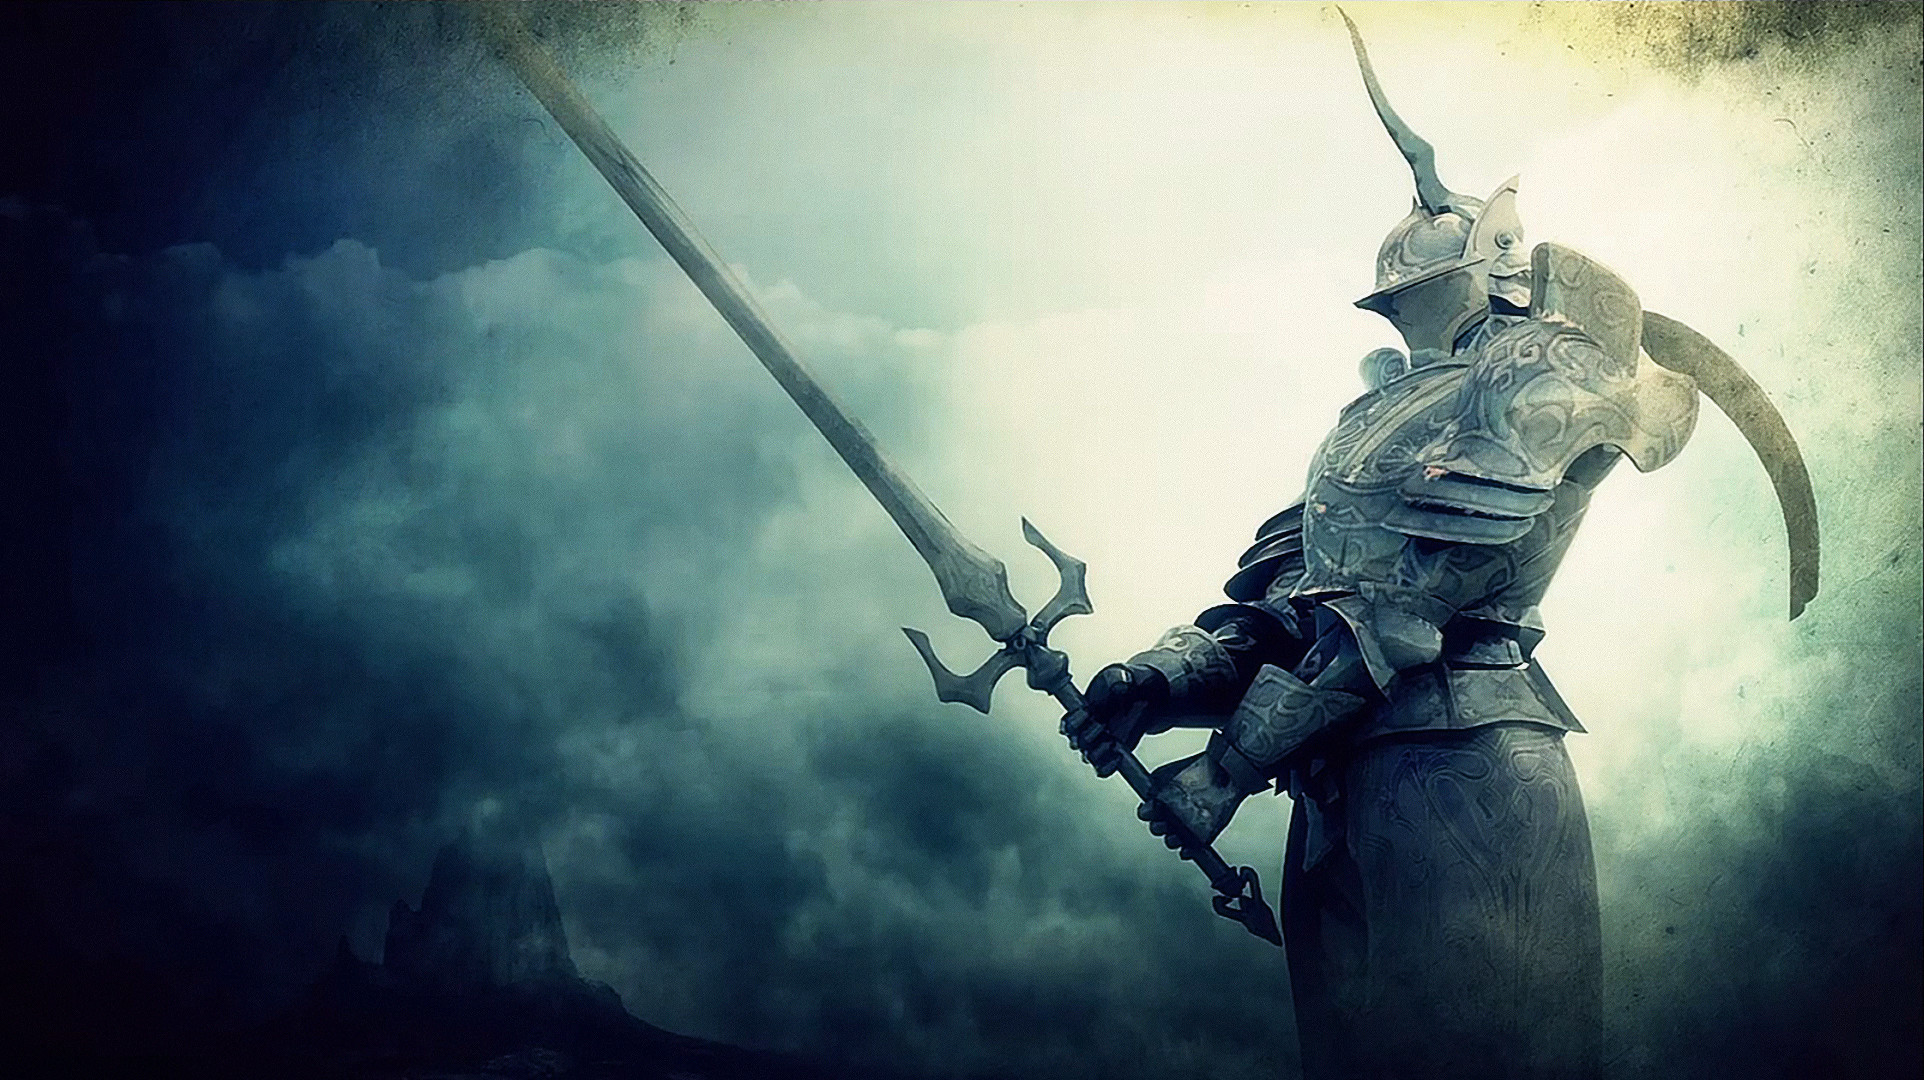 Res: 1924x1080, Demon's Souls Video Game · HD Wallpaper | Background Image ID:165685